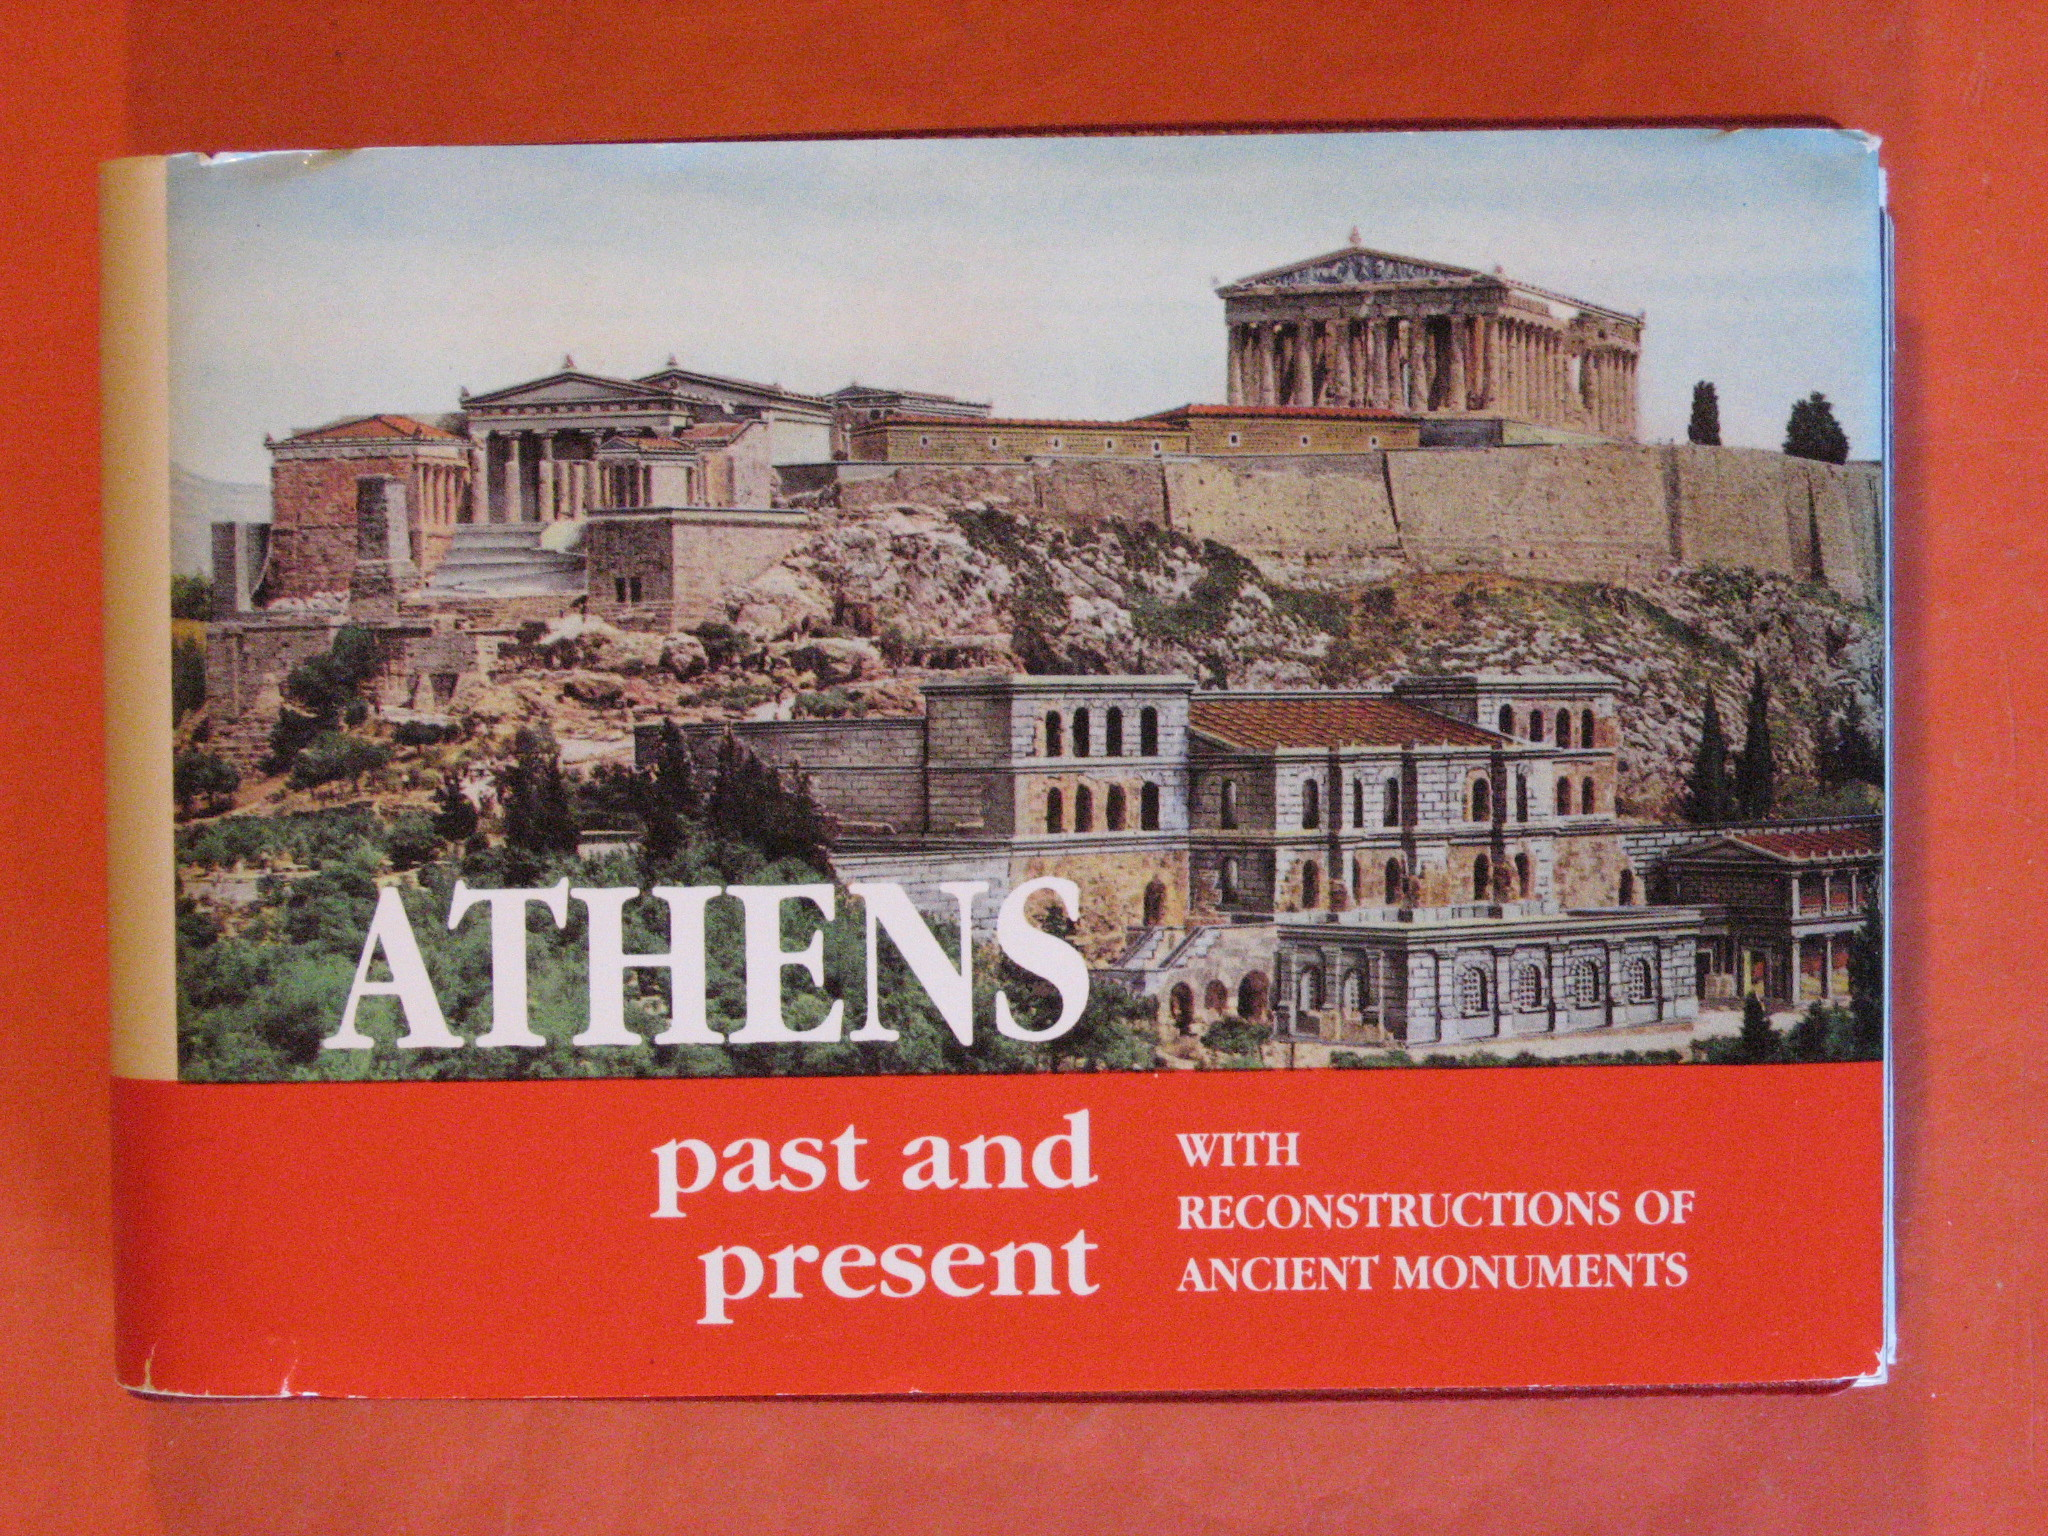 Athens Past and Present with Reconstructions of Ancient Monuments, Panaiotou, Niki Drossou